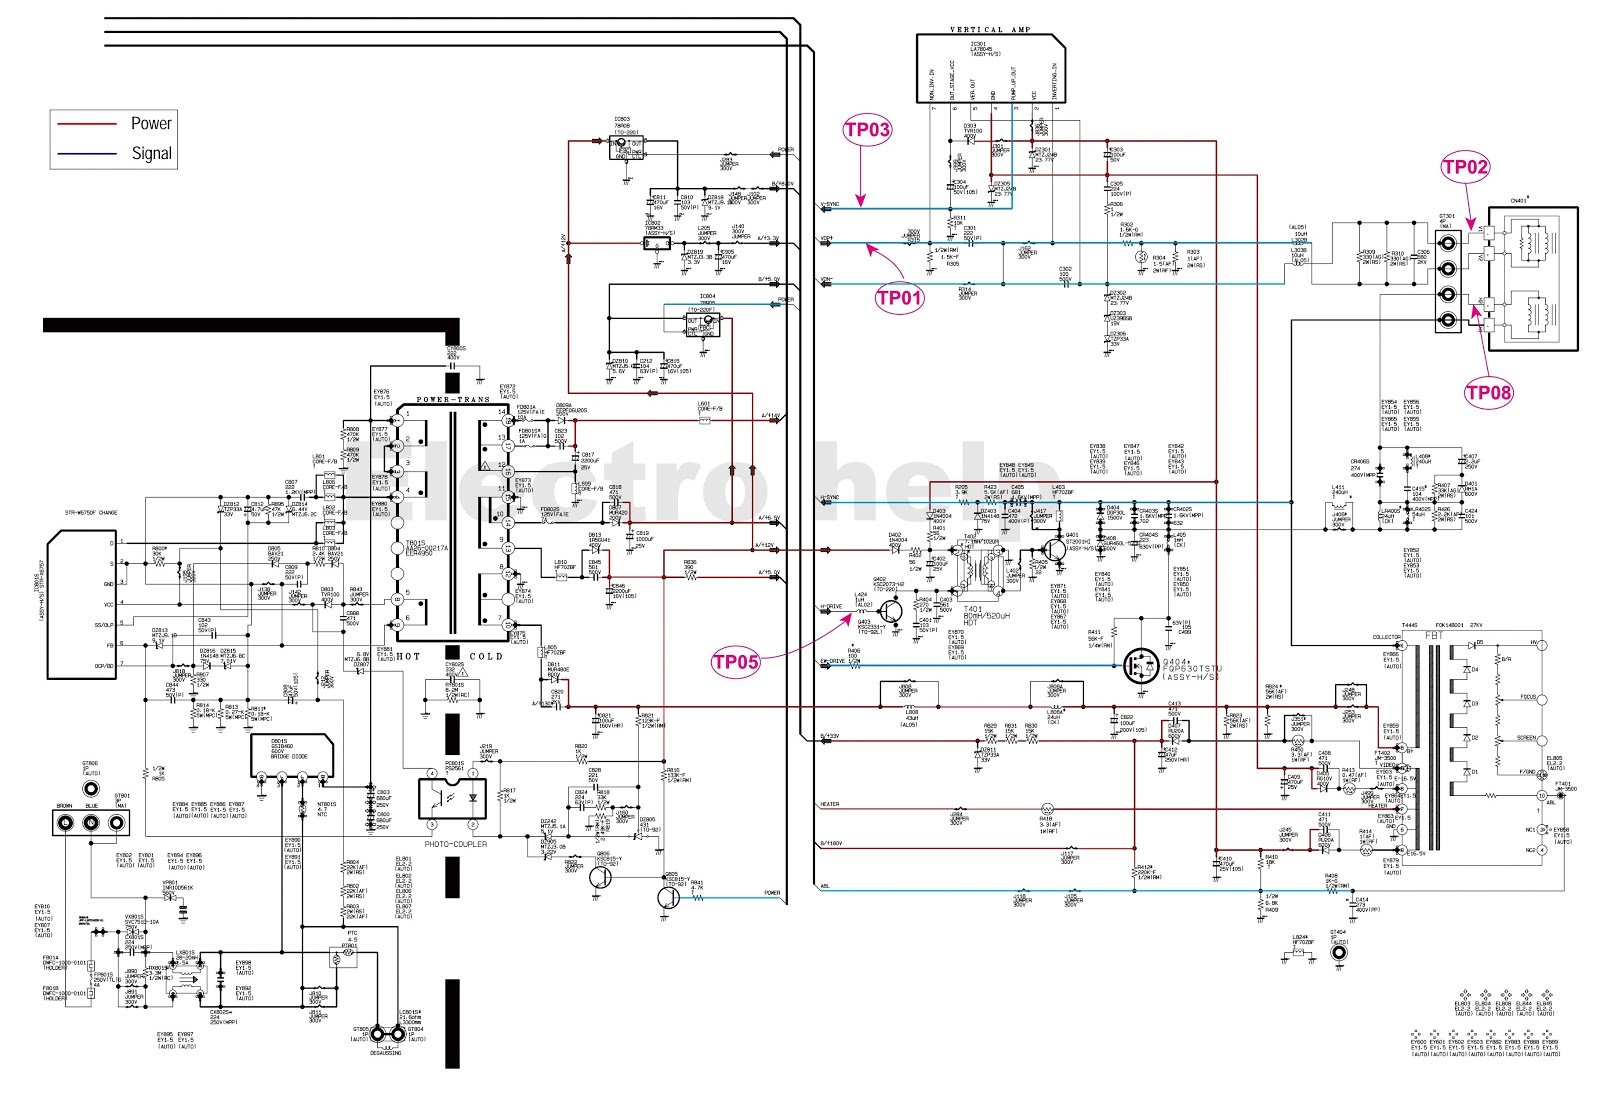 medium resolution of samsung wiring diagram wiring diagram schematics samsung dishwasher wiring diagram samsung tv wiring diagram wiring diagram